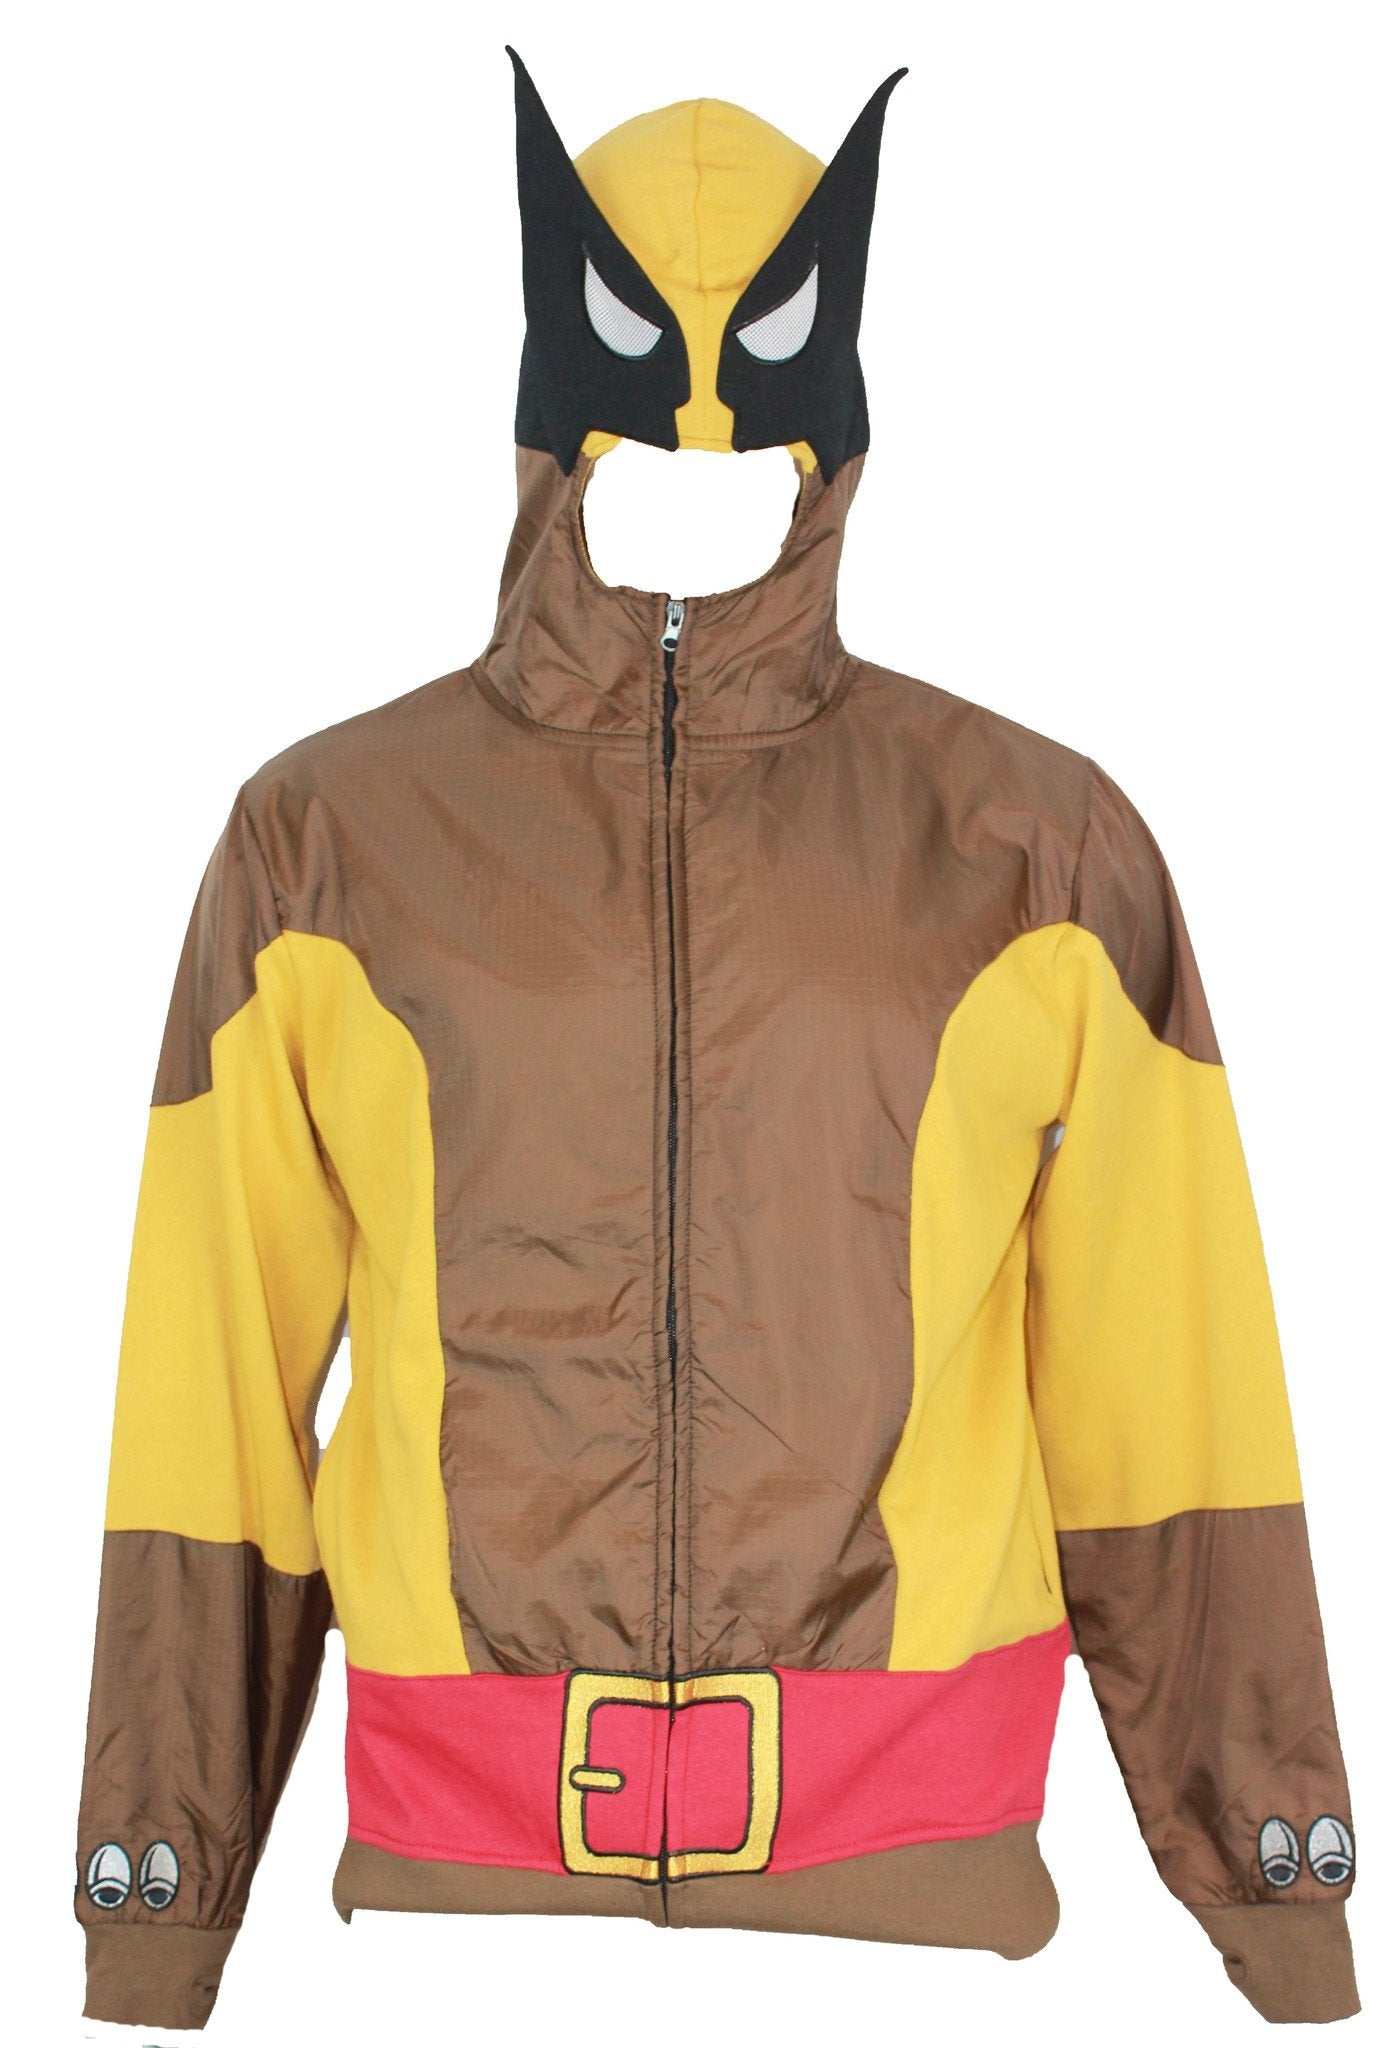 Wolverine (Marvel comics)  Mens Zip Up Hoodie Sweatshirt -  Tan Costume Style